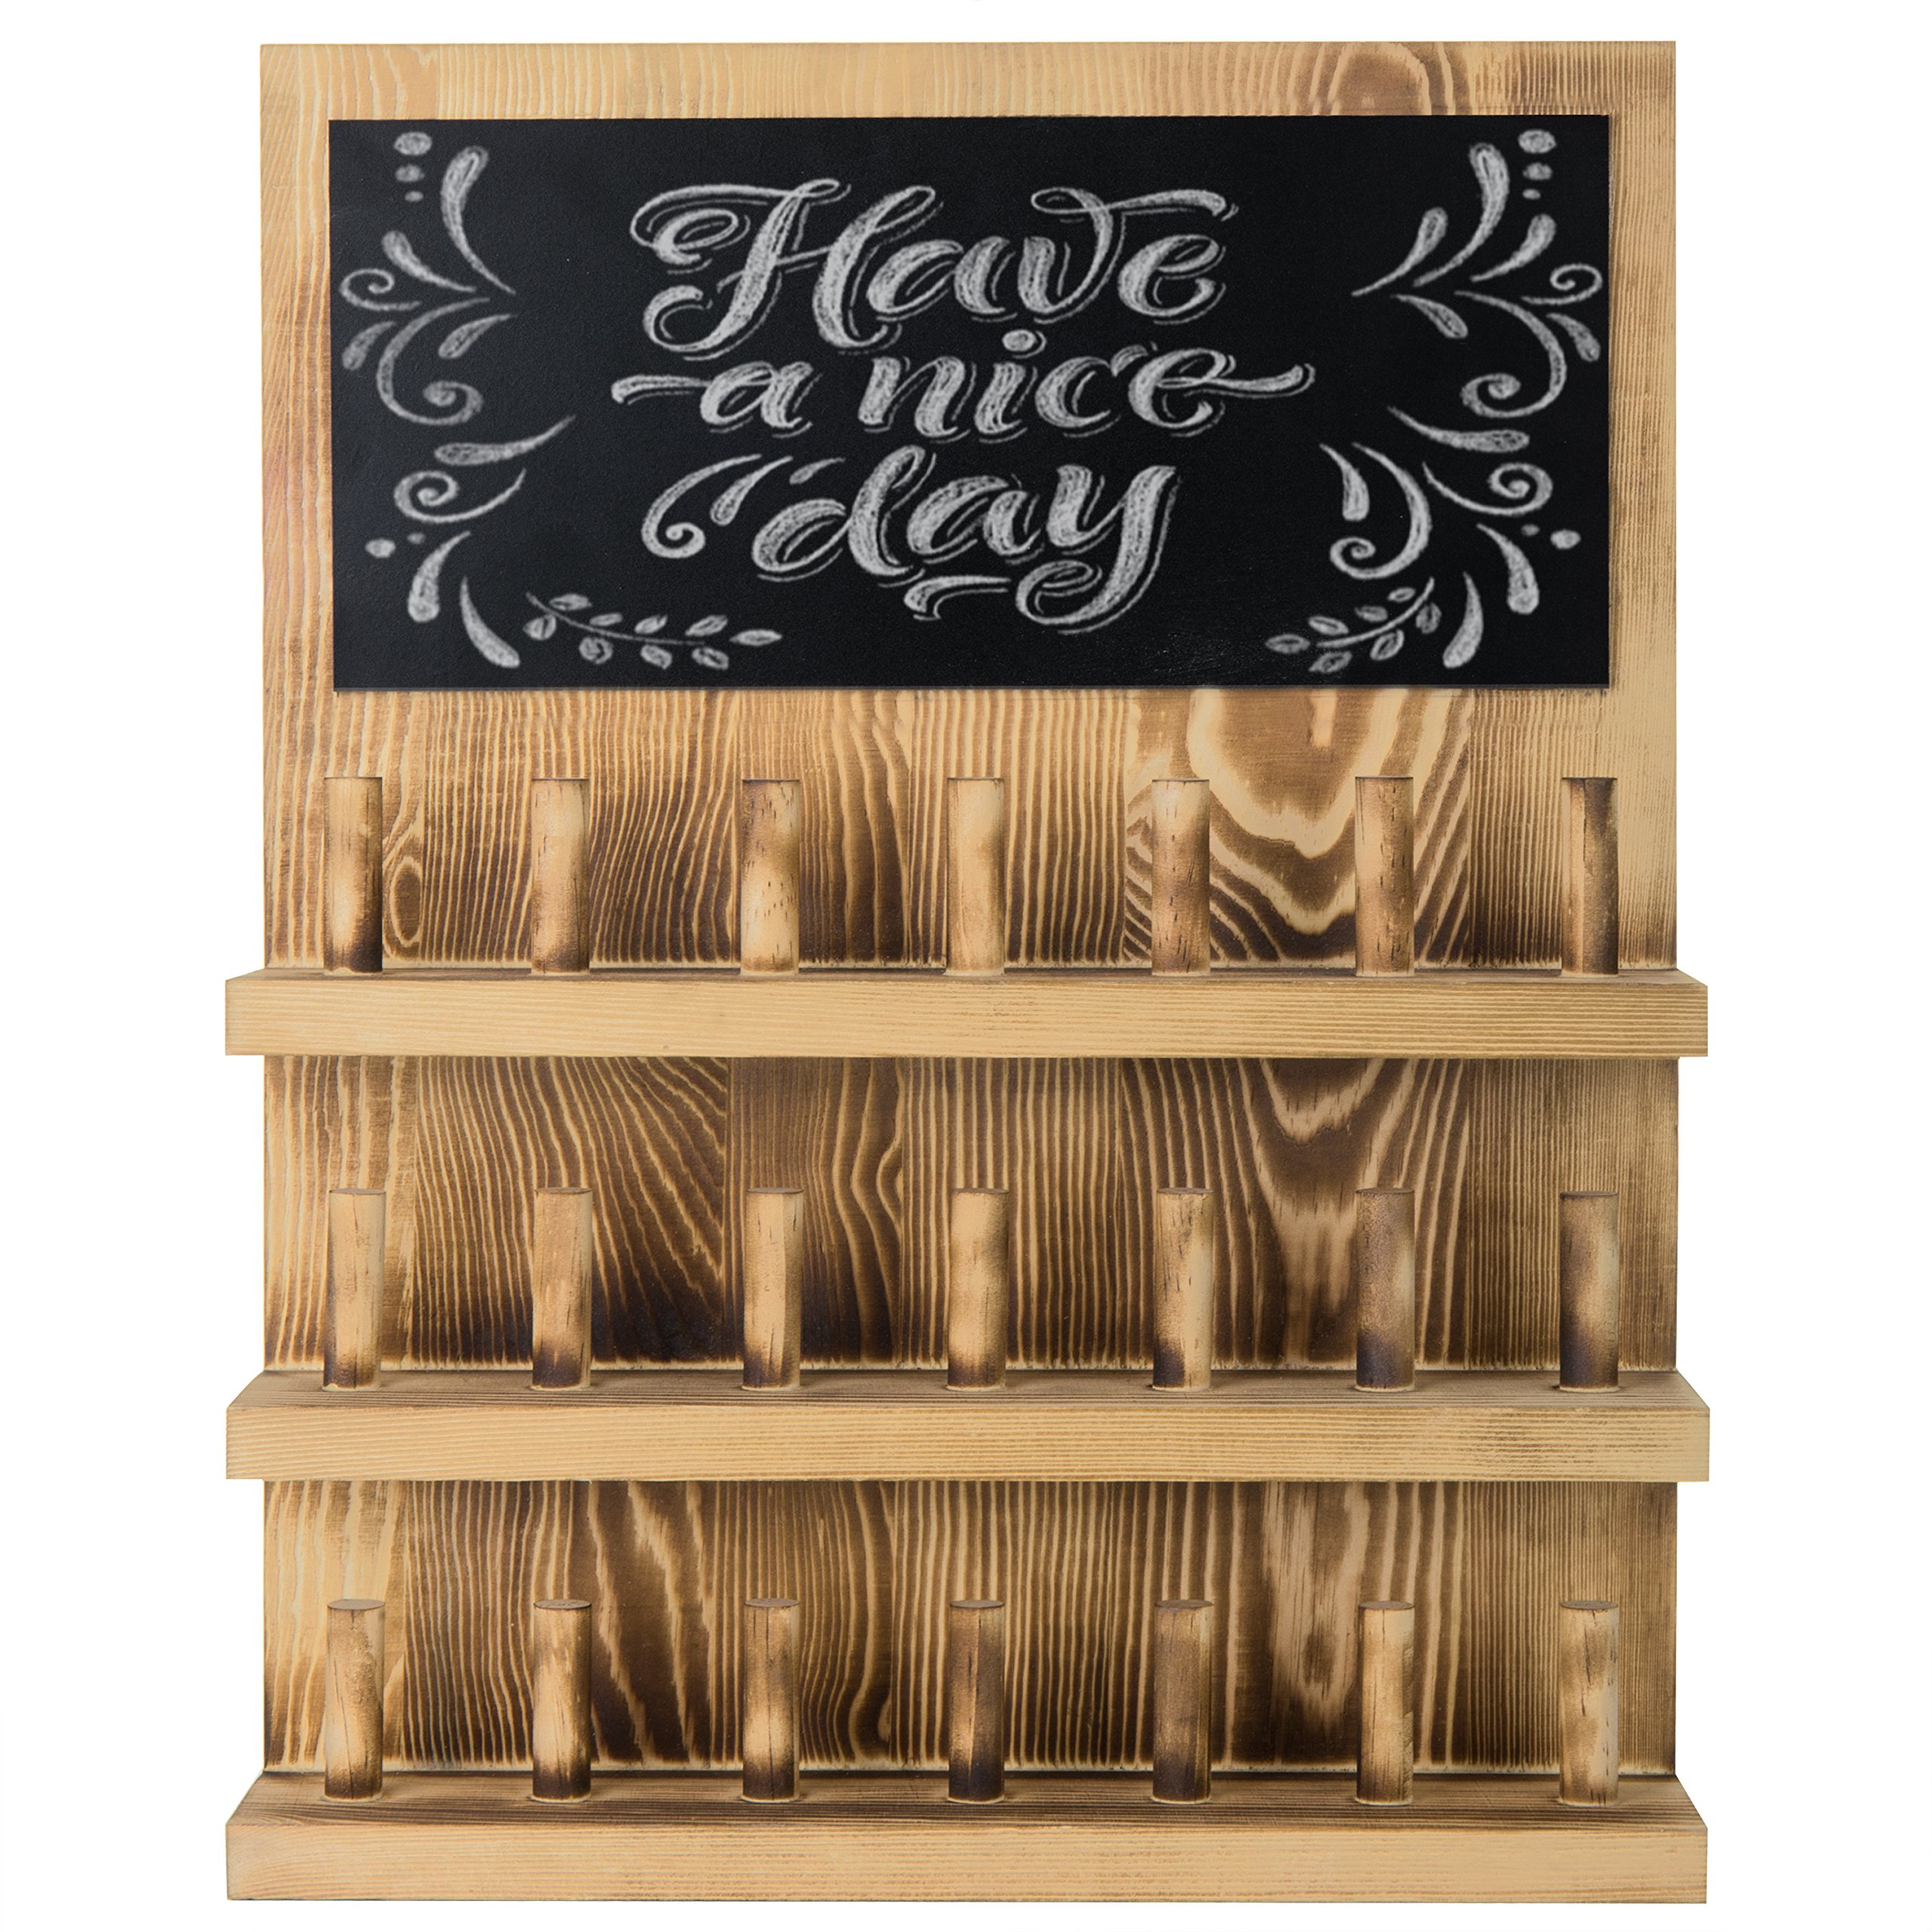 MyGift 3-Tier Wall-Mounted Wood Ring Display Rack with Chalkboard by MyGift (Image #2)